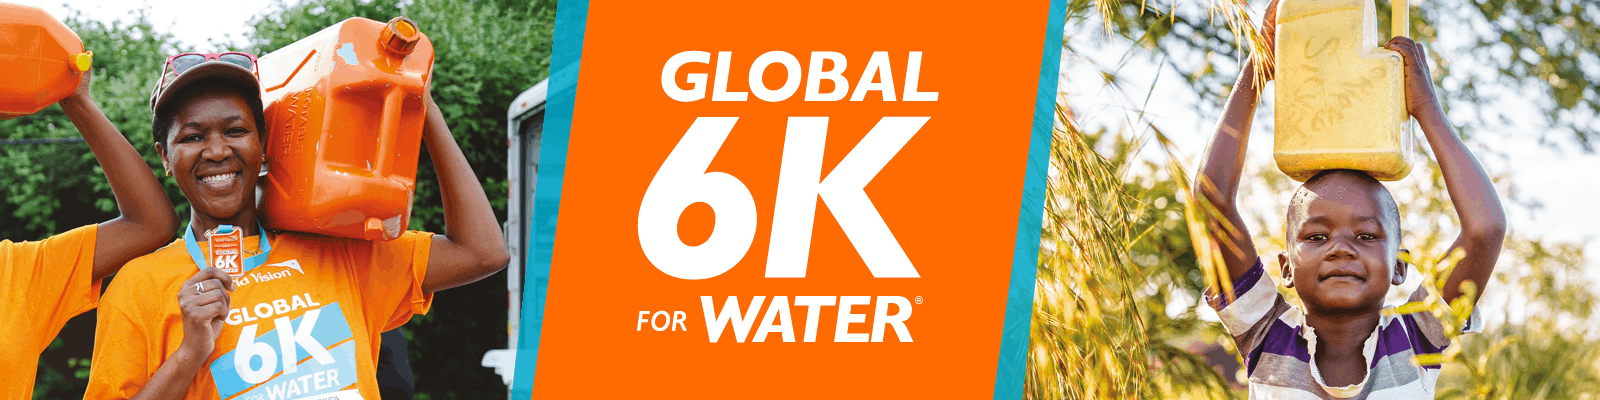 World Vision Global 6k for Water Walkathon 世界宣明會六公里步行籌款